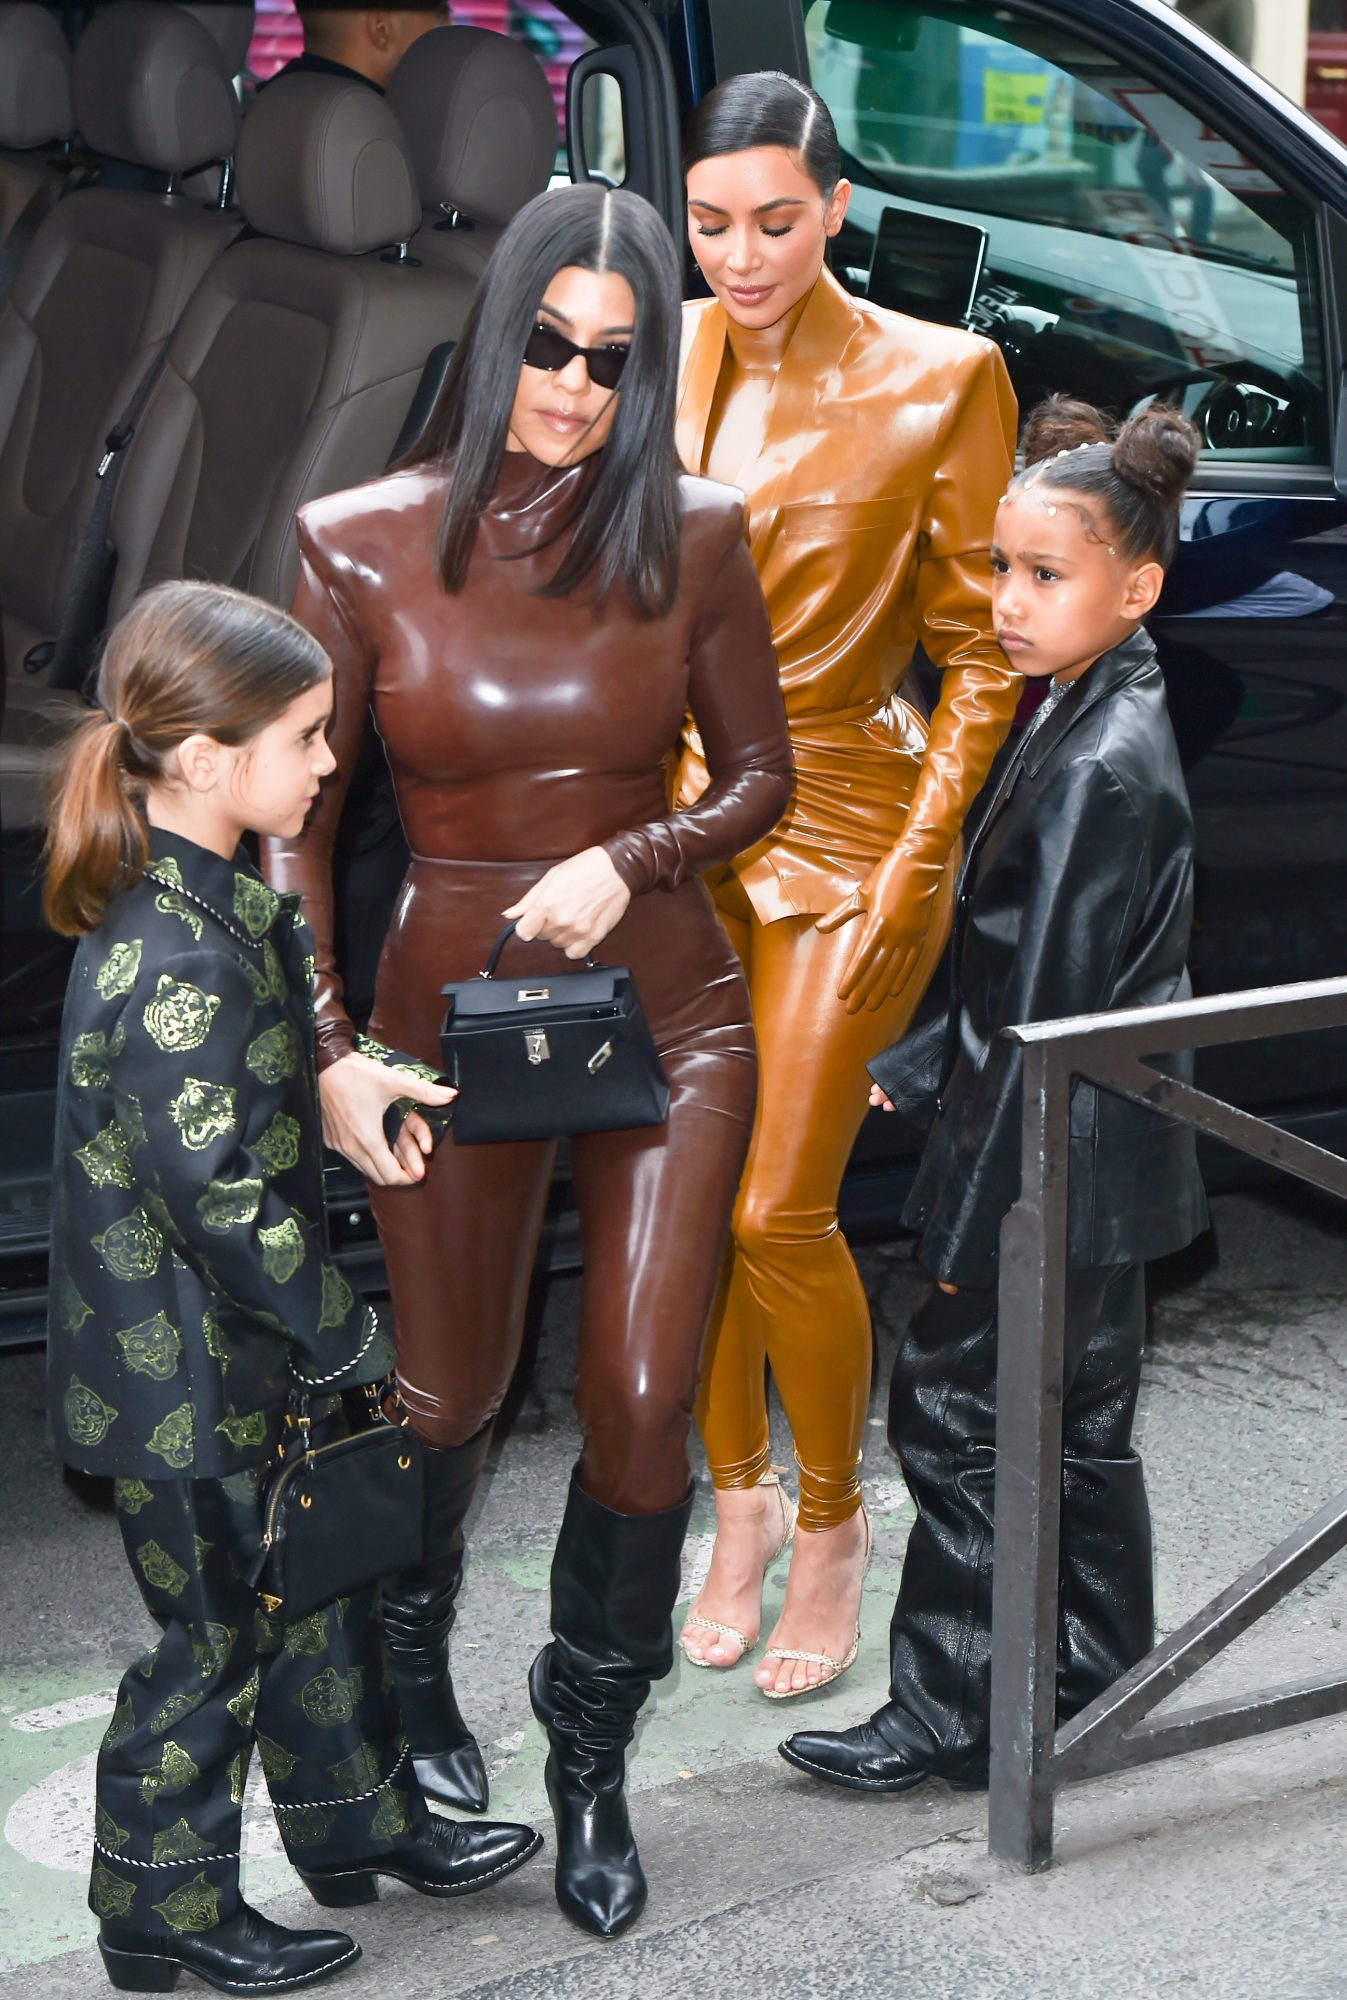 Kim Kardashian and sister Kourtney Kardashian arrive at the Bouffe Du Nord Church/Theatre for Sunday service with Kanye West on March 1st 2020 in Paris, France.